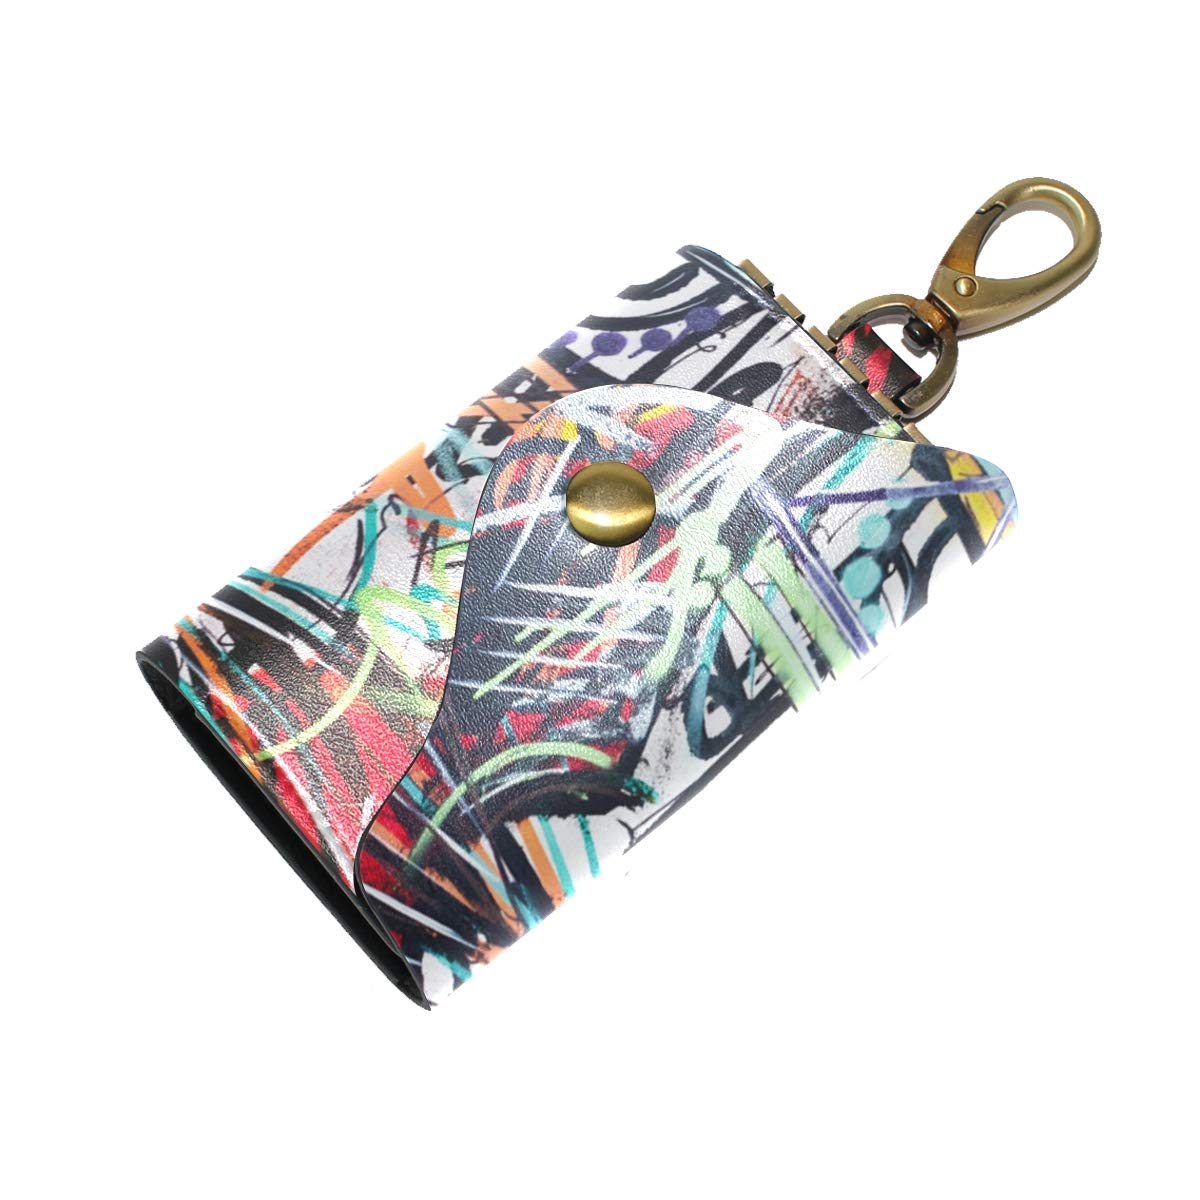 KEAKIA Tiger Painting Leather Key Case Wallets Tri-fold Key Holder Keychains with 6 Hooks 2 Slot Snap Closure for Men Women